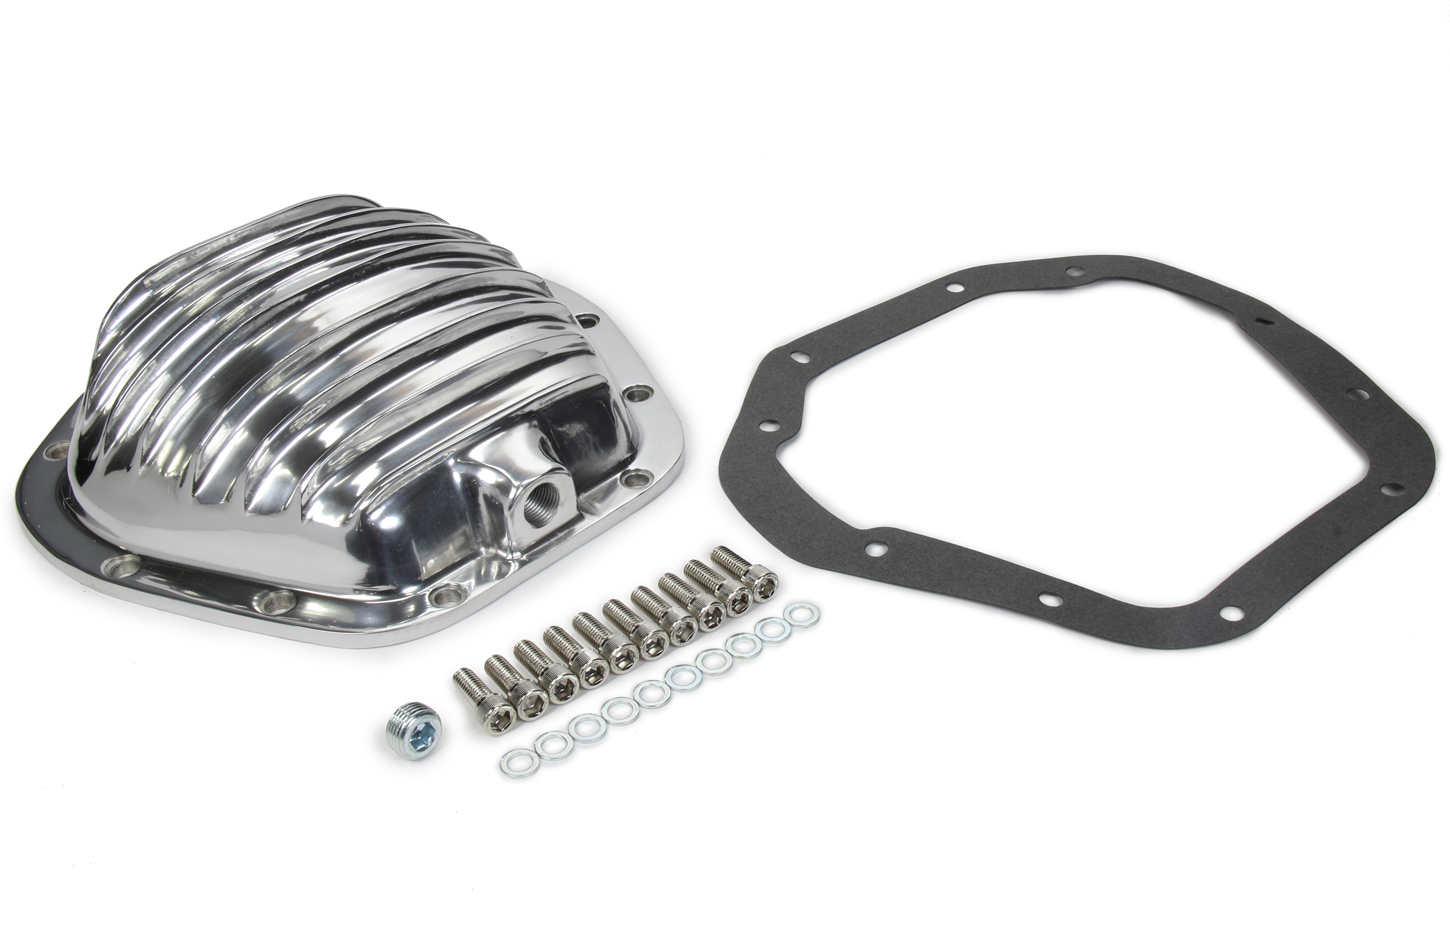 Specialty Products 4911KIT Differential Cover, Gasket / Hardware Included, Aluminum, Chrome, Dana 60, Each